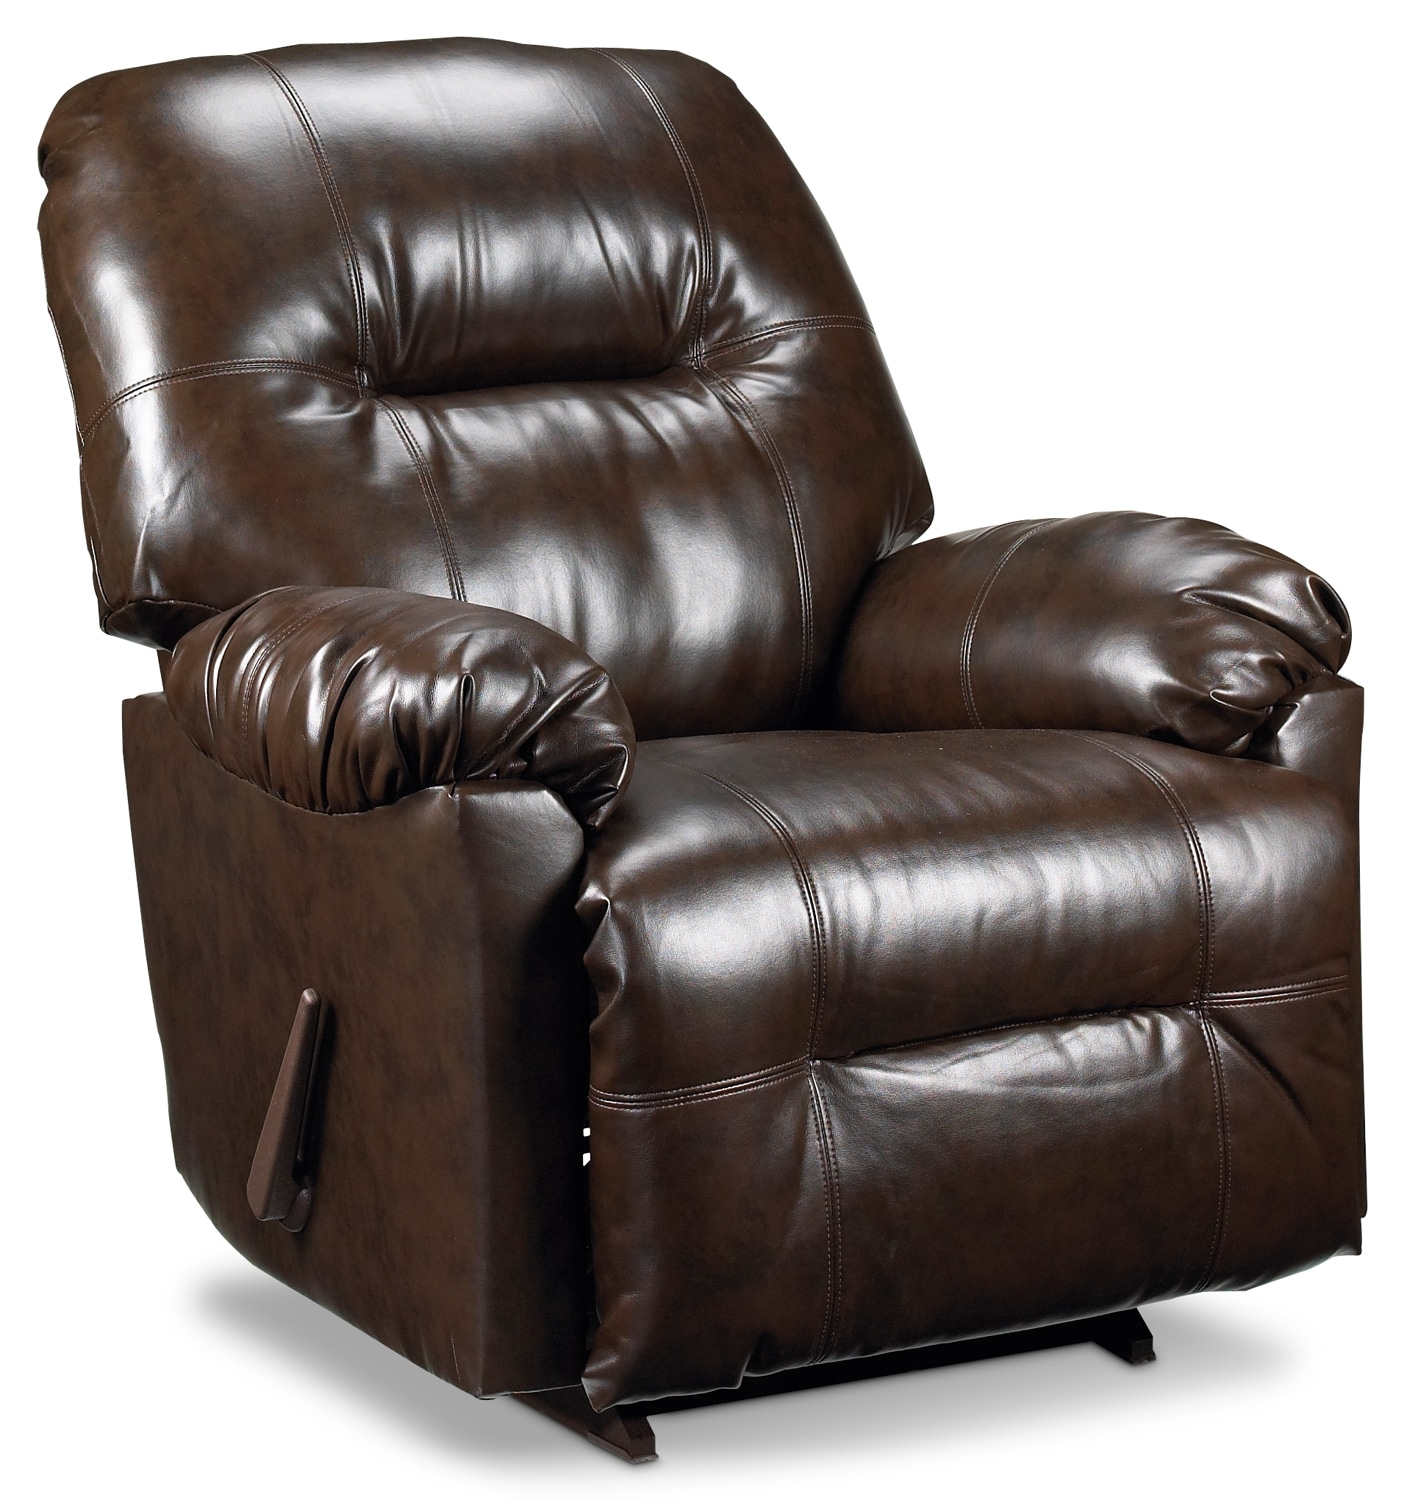 [Briar Rocker Recliner - Brown]